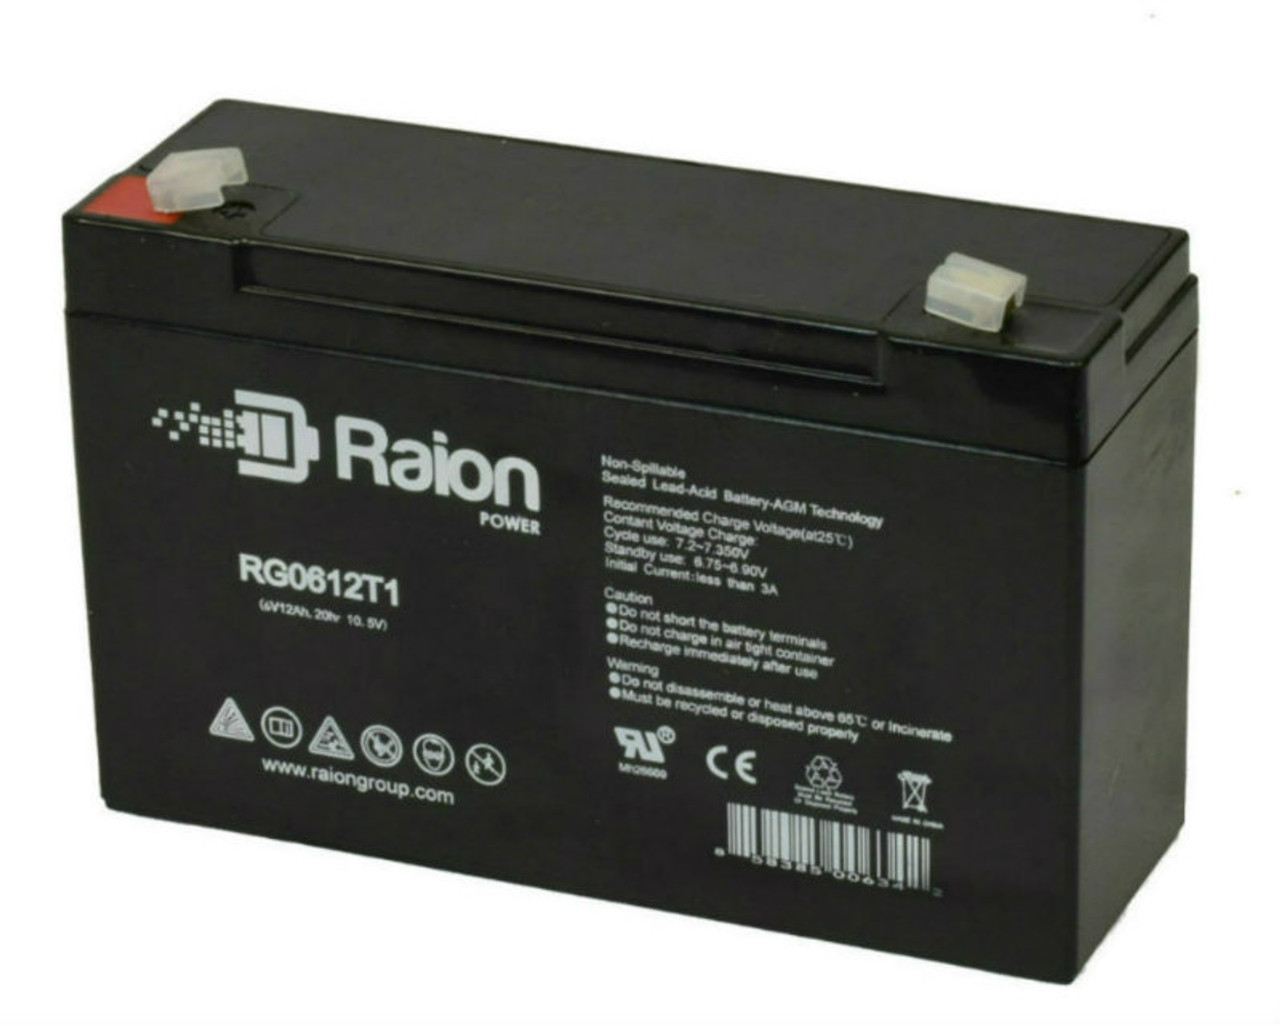 Raion Power RG06120T1 Replacement Battery Pack for Elsar 23056 emergency light